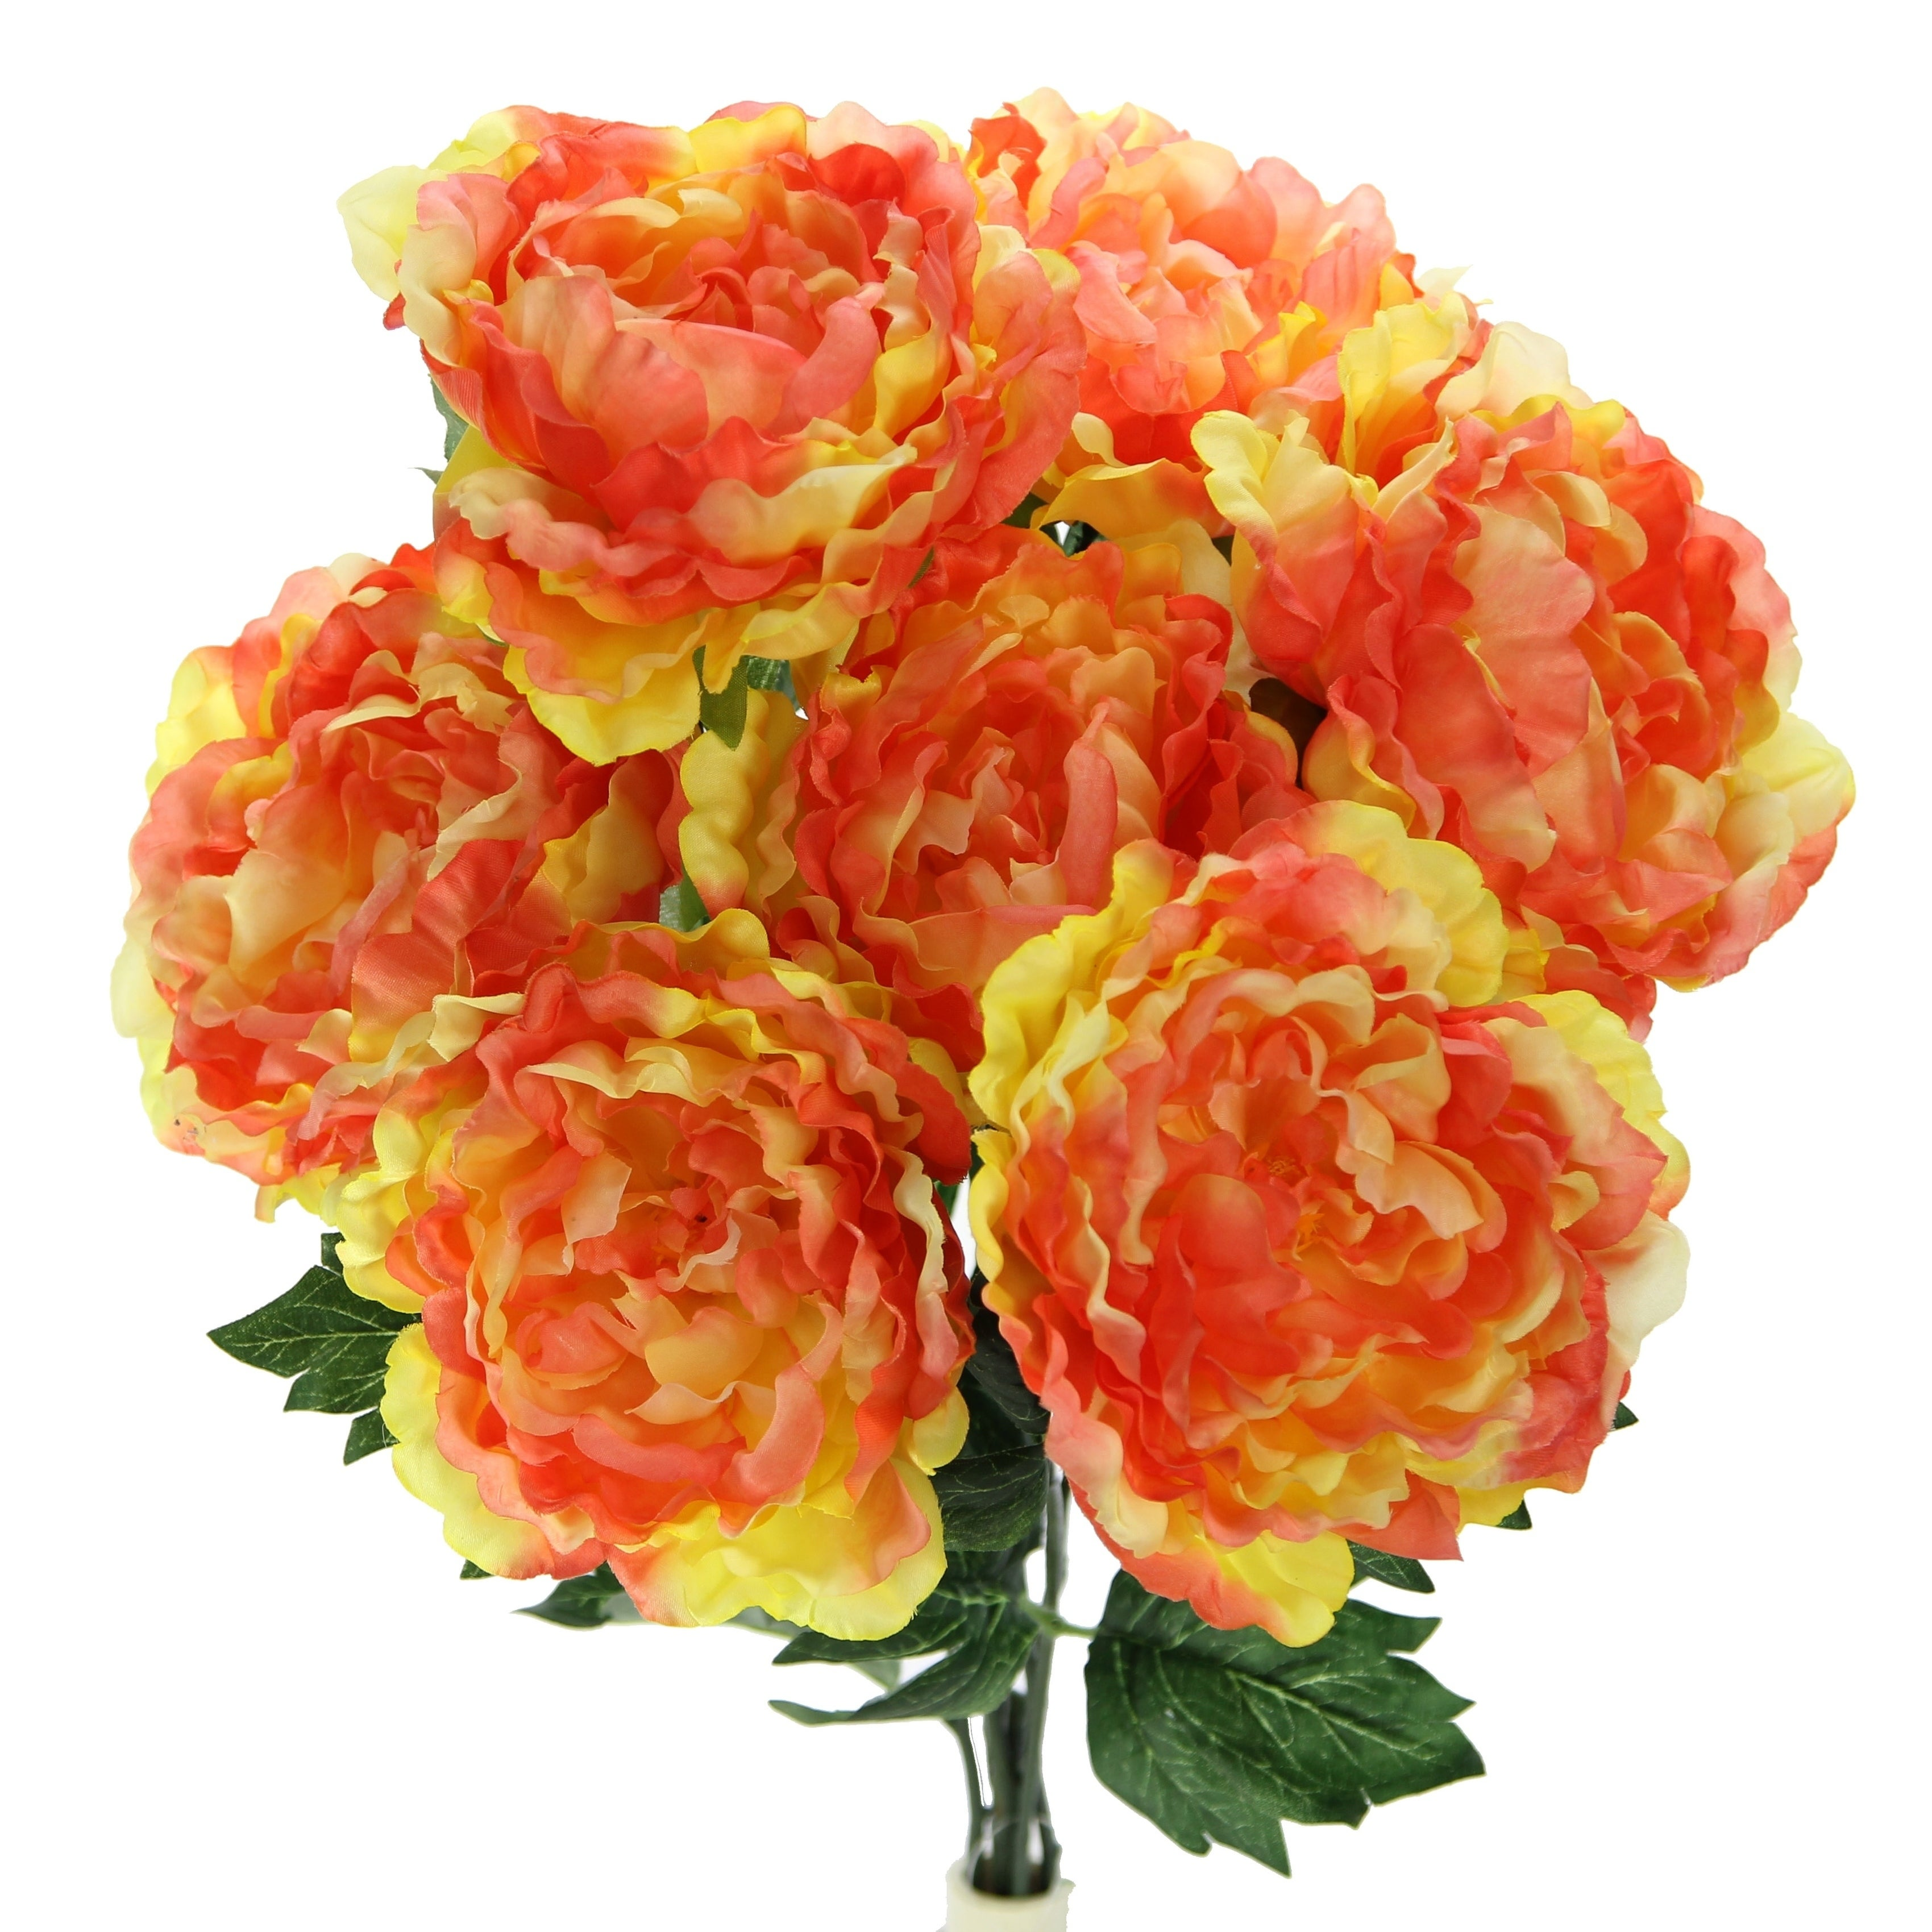 Shop 7 Stems Faux Full Blooming Peony Flower Bush Free Shipping On